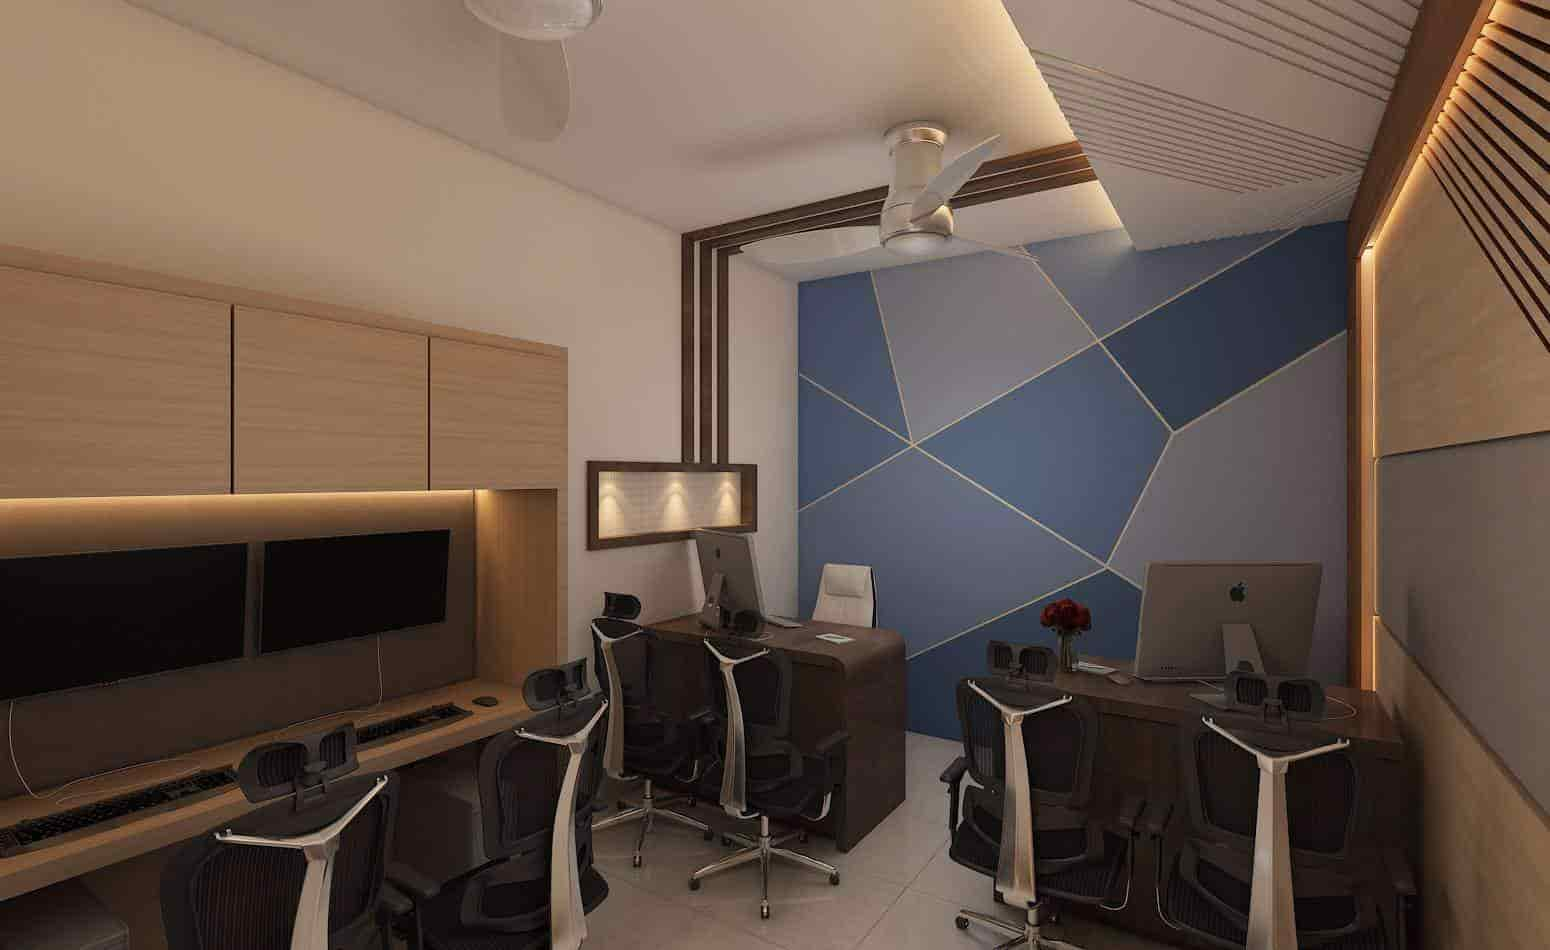 New era interior concepts manjalpur interior design for Interior design companies